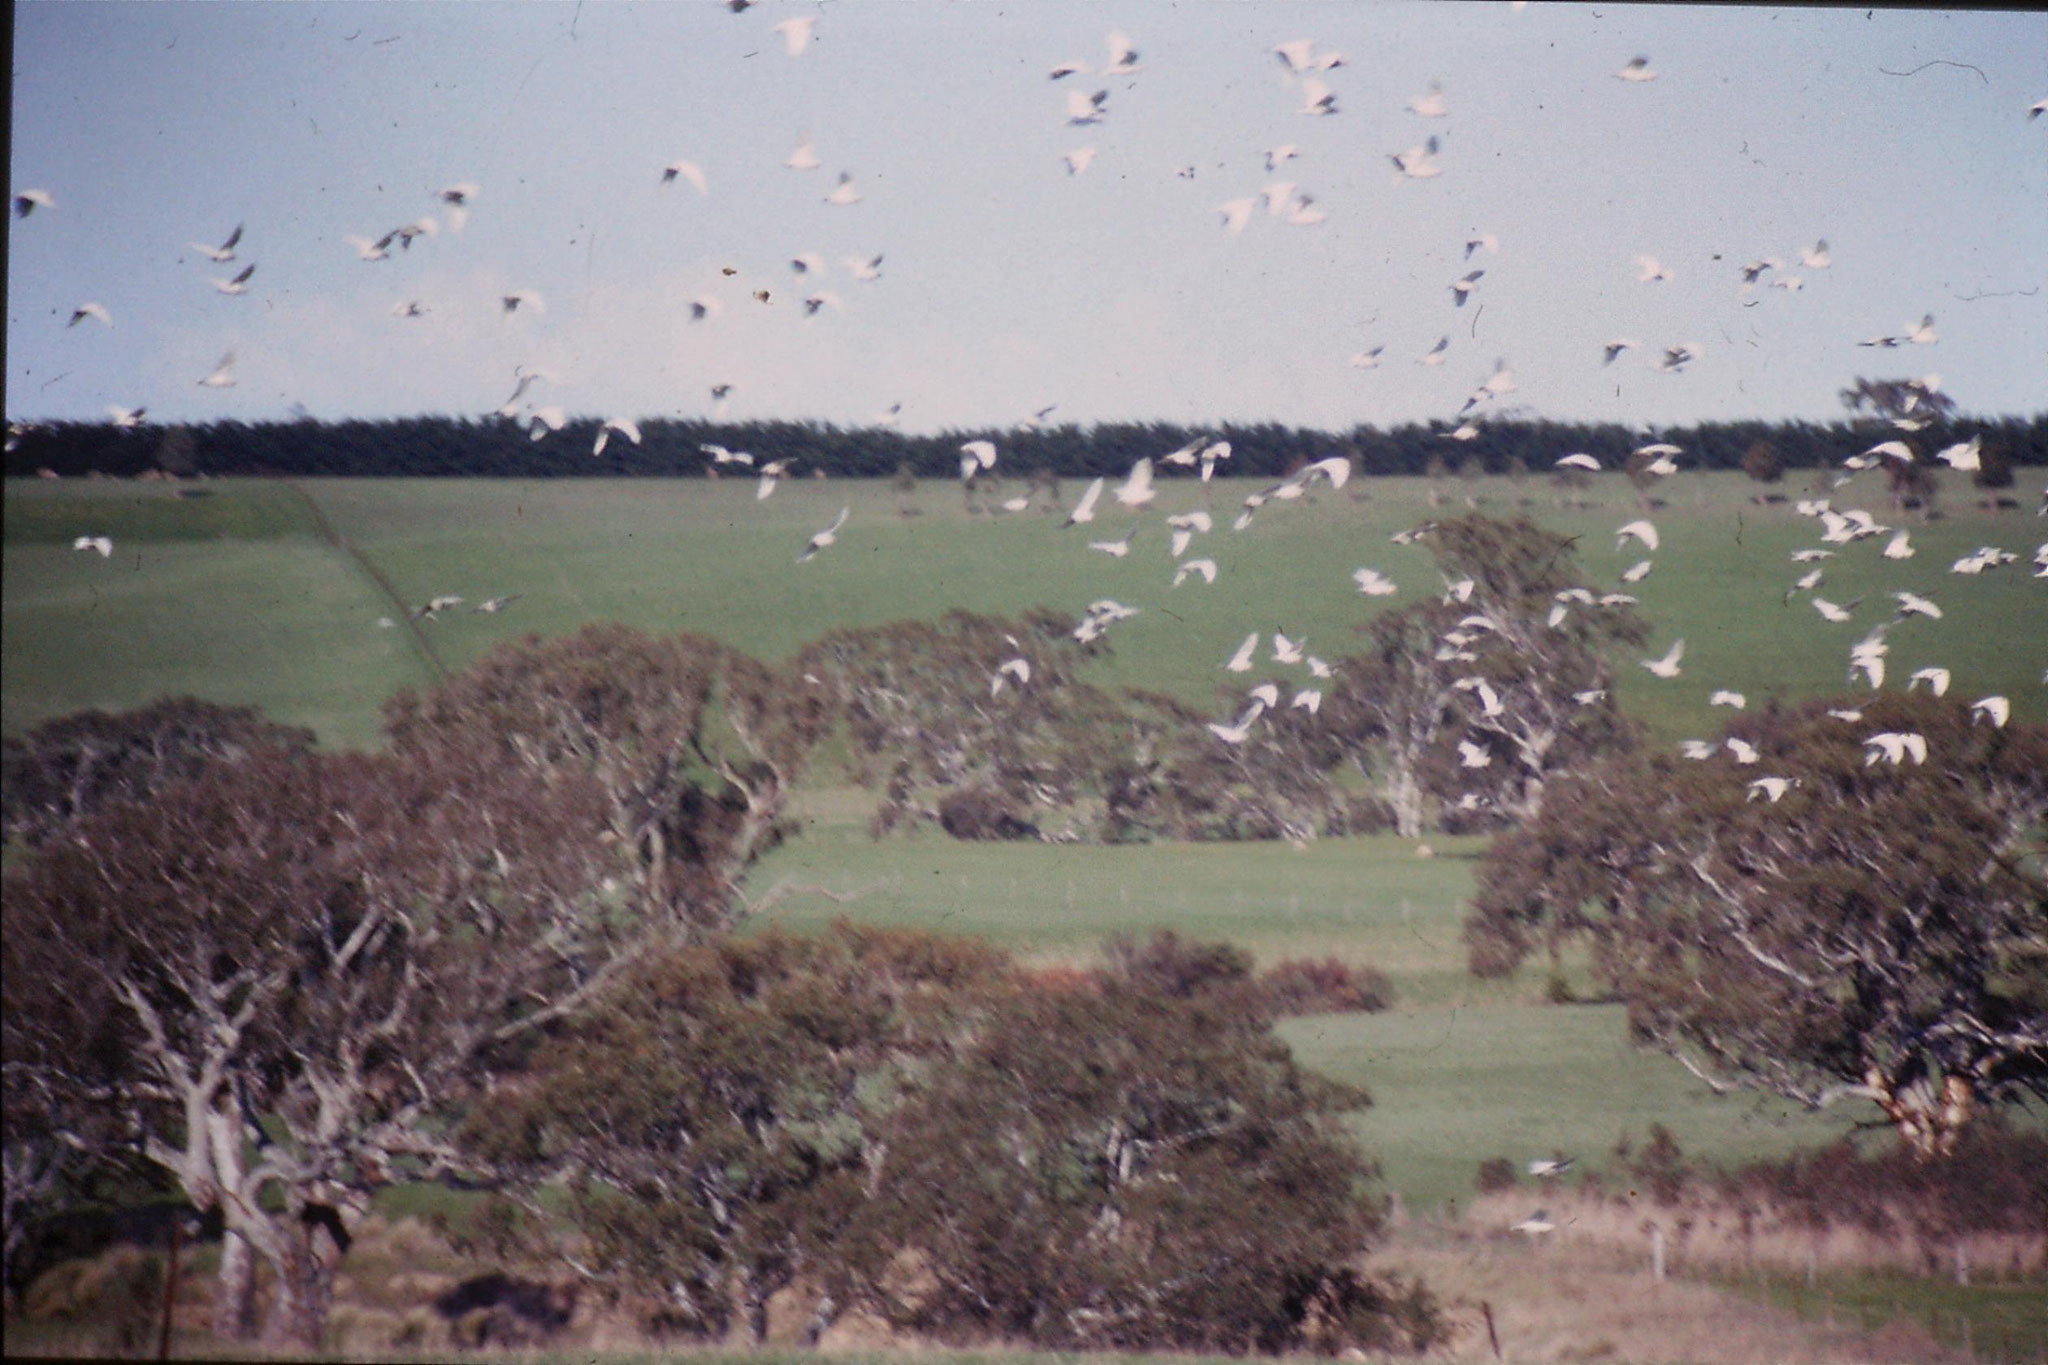 20/9/1990: -1: on road to Grampians, flock of Corellas